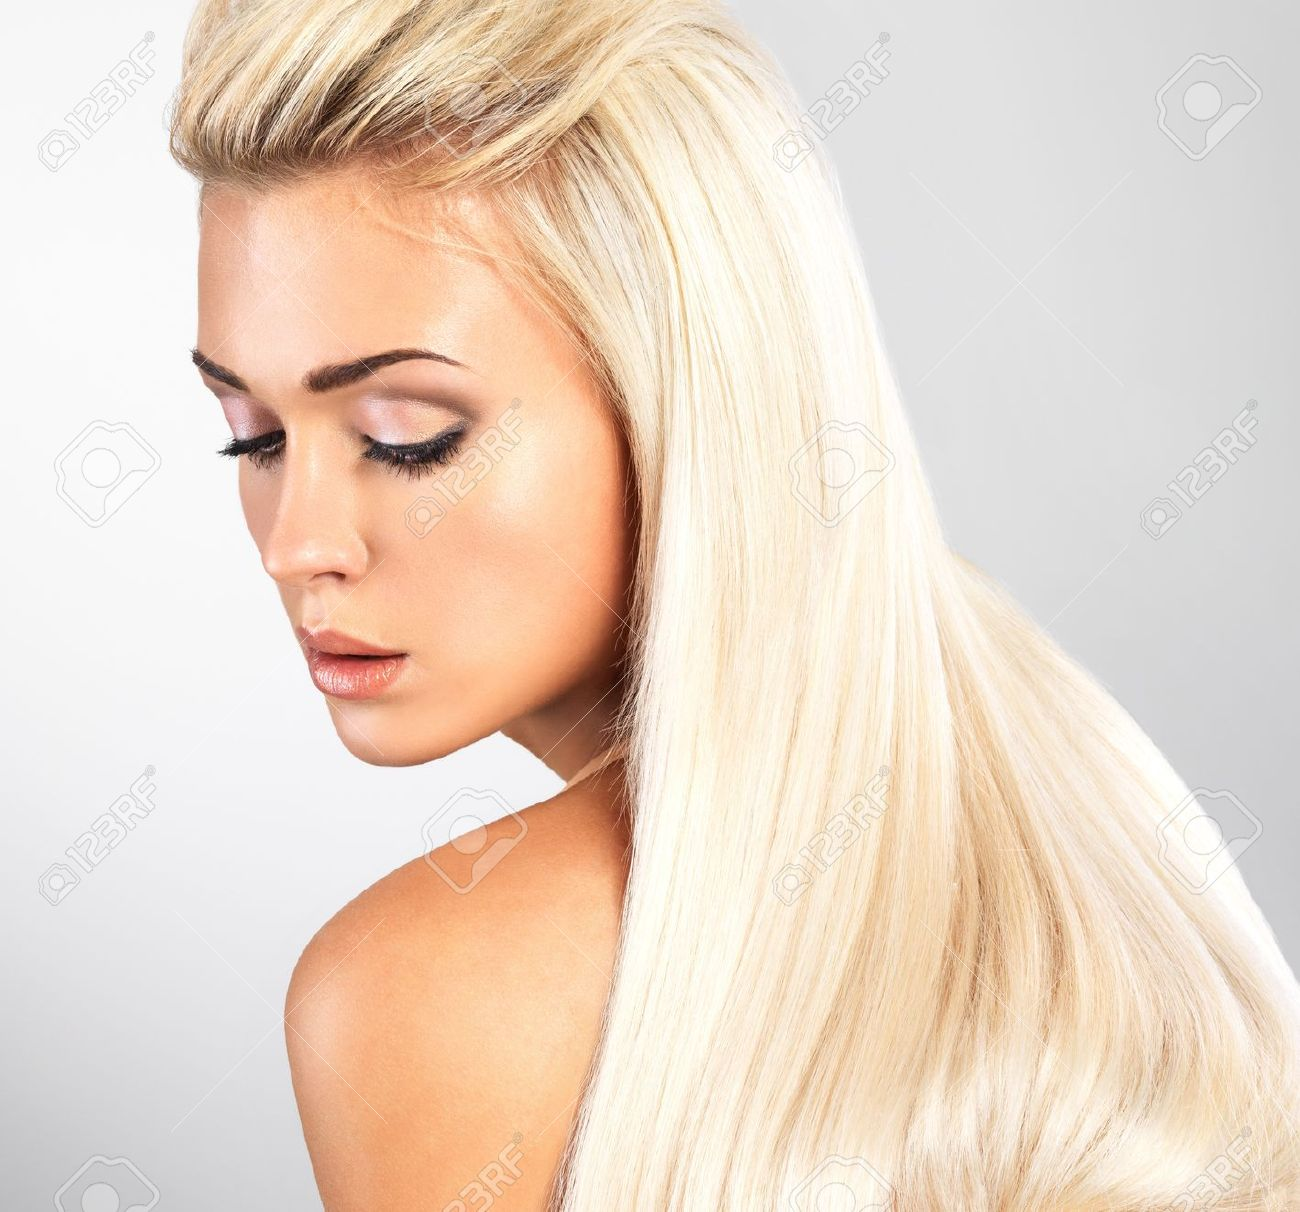 Beautiful woman with long straight blond hair. Fashion model posing at studio. Stock Photo - 18462498